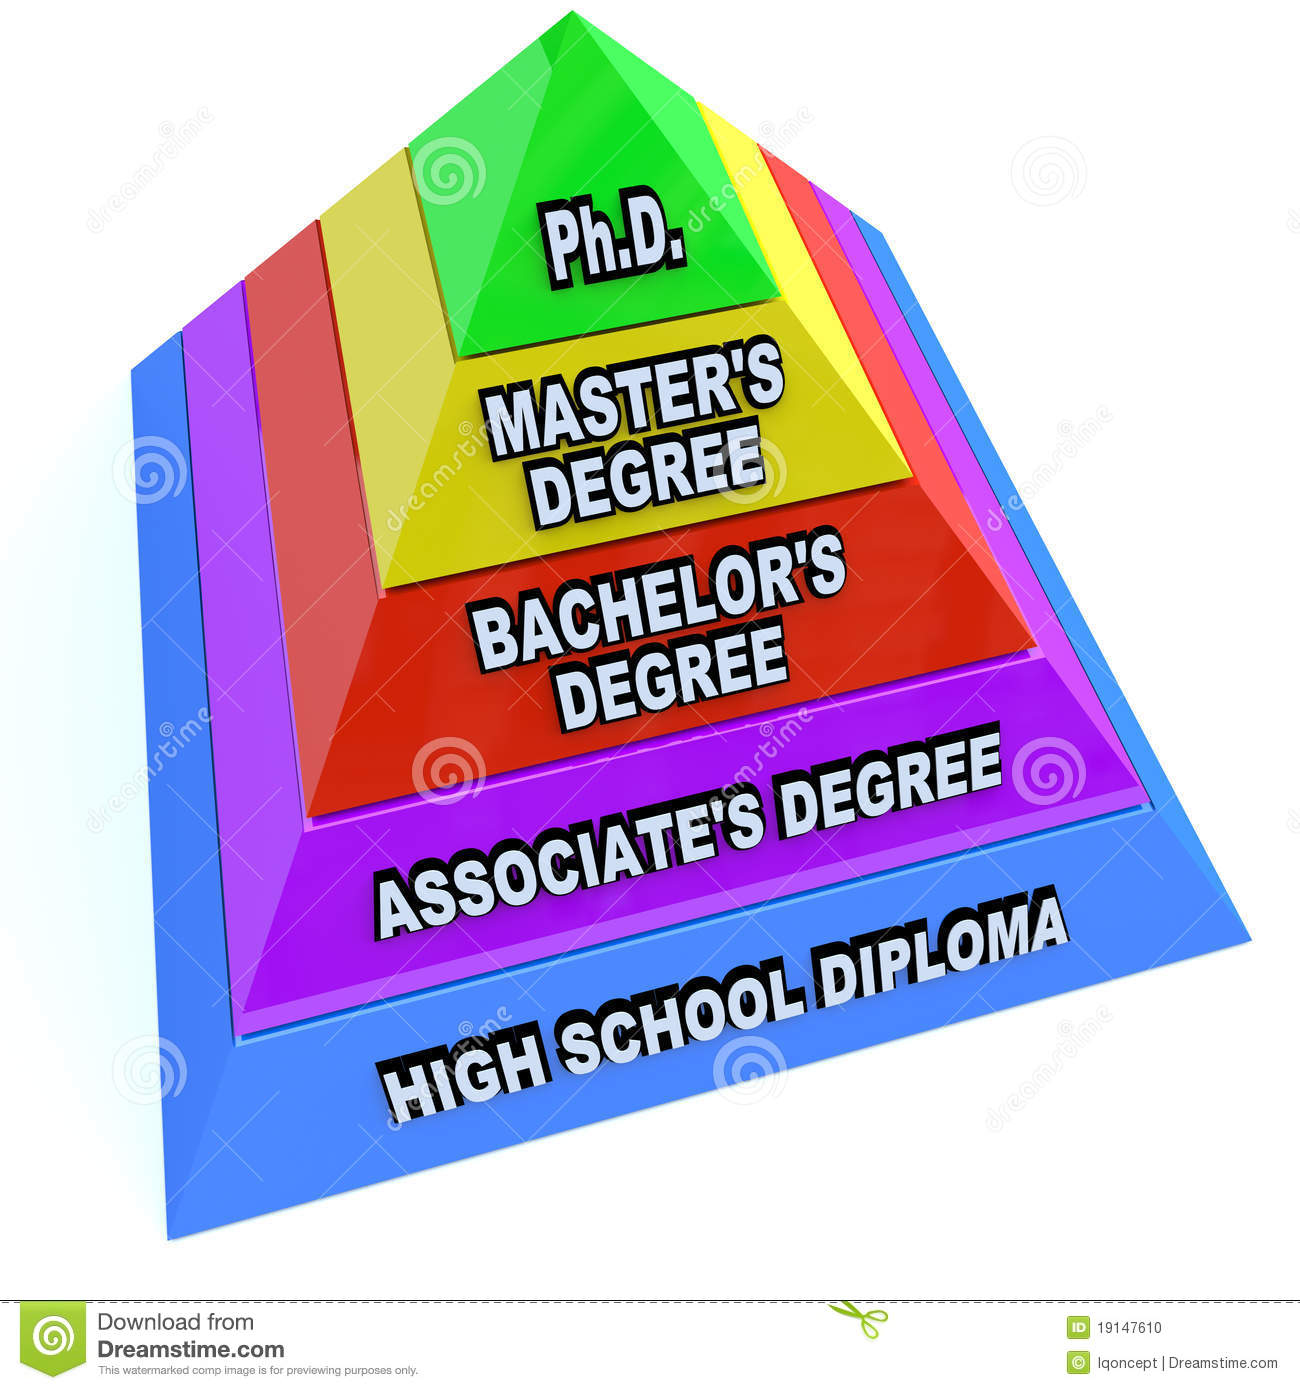 009 123helpme Free Essay Number Invite Code Higher Learning Education Degrees Pyramid Unique To Find Your And Enter It Below Full